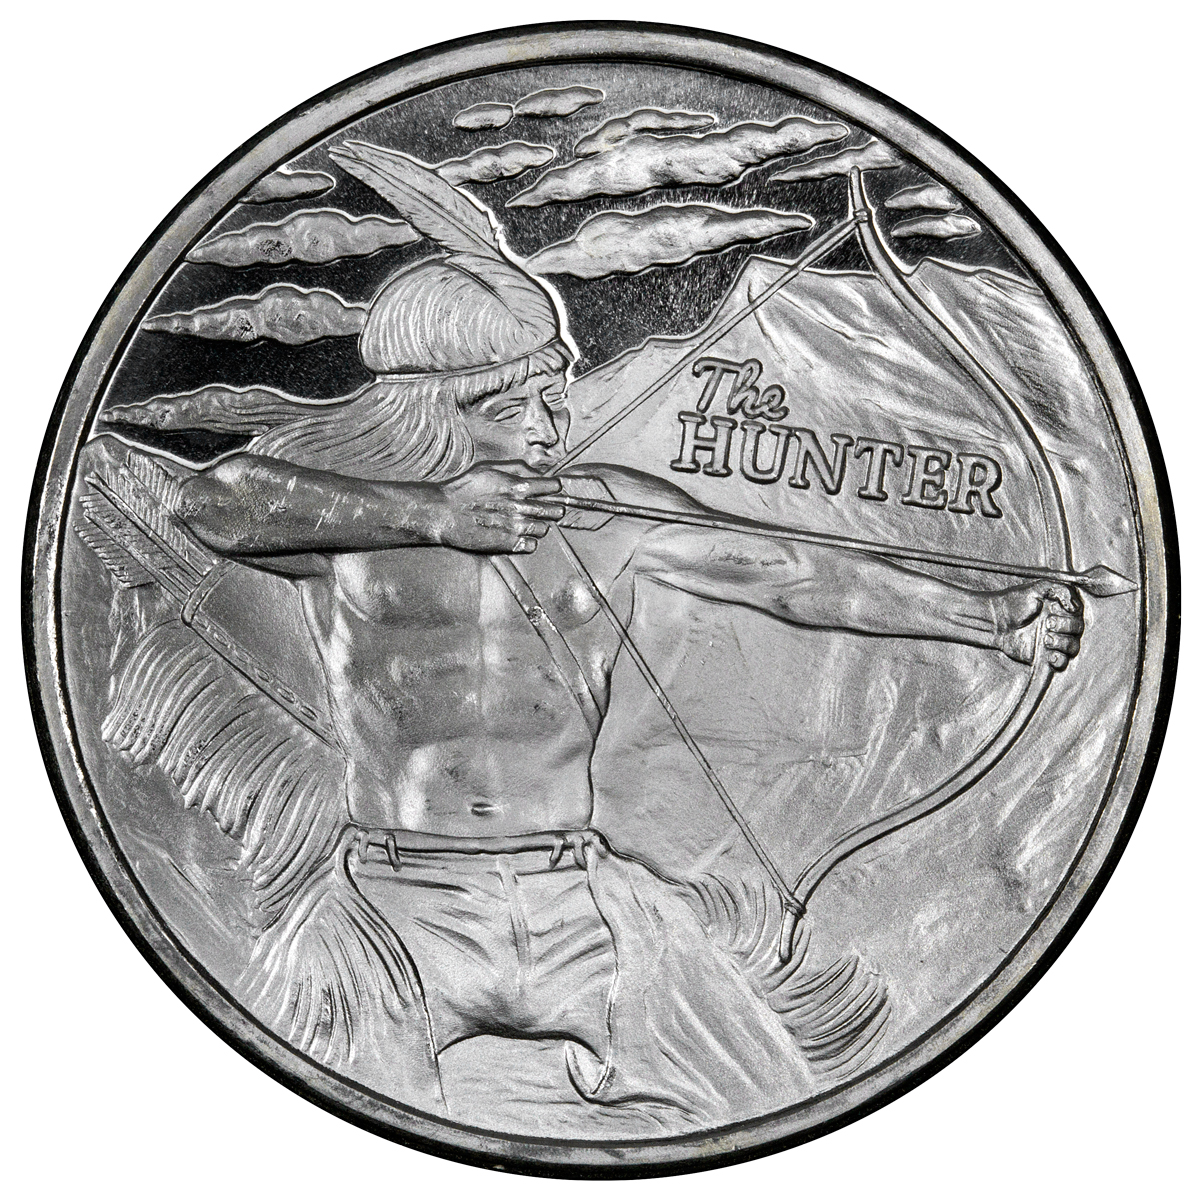 2016 Highland Mint The Hunter 1 Oz Silver Round